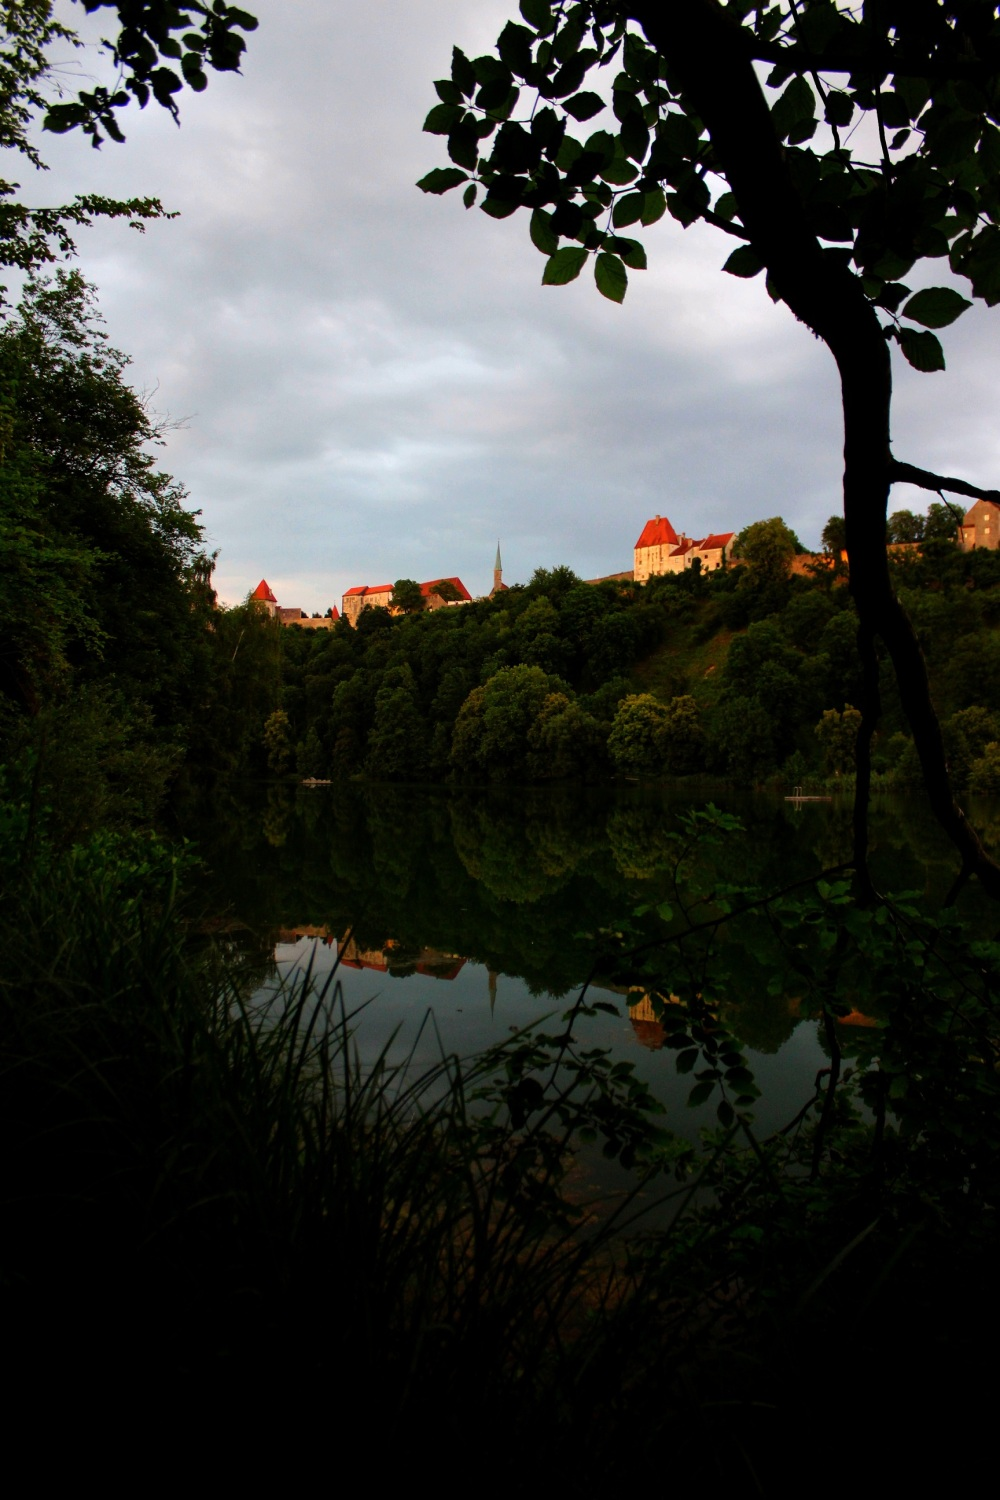 The Wöhrsee reflects on Burghausen's Burg